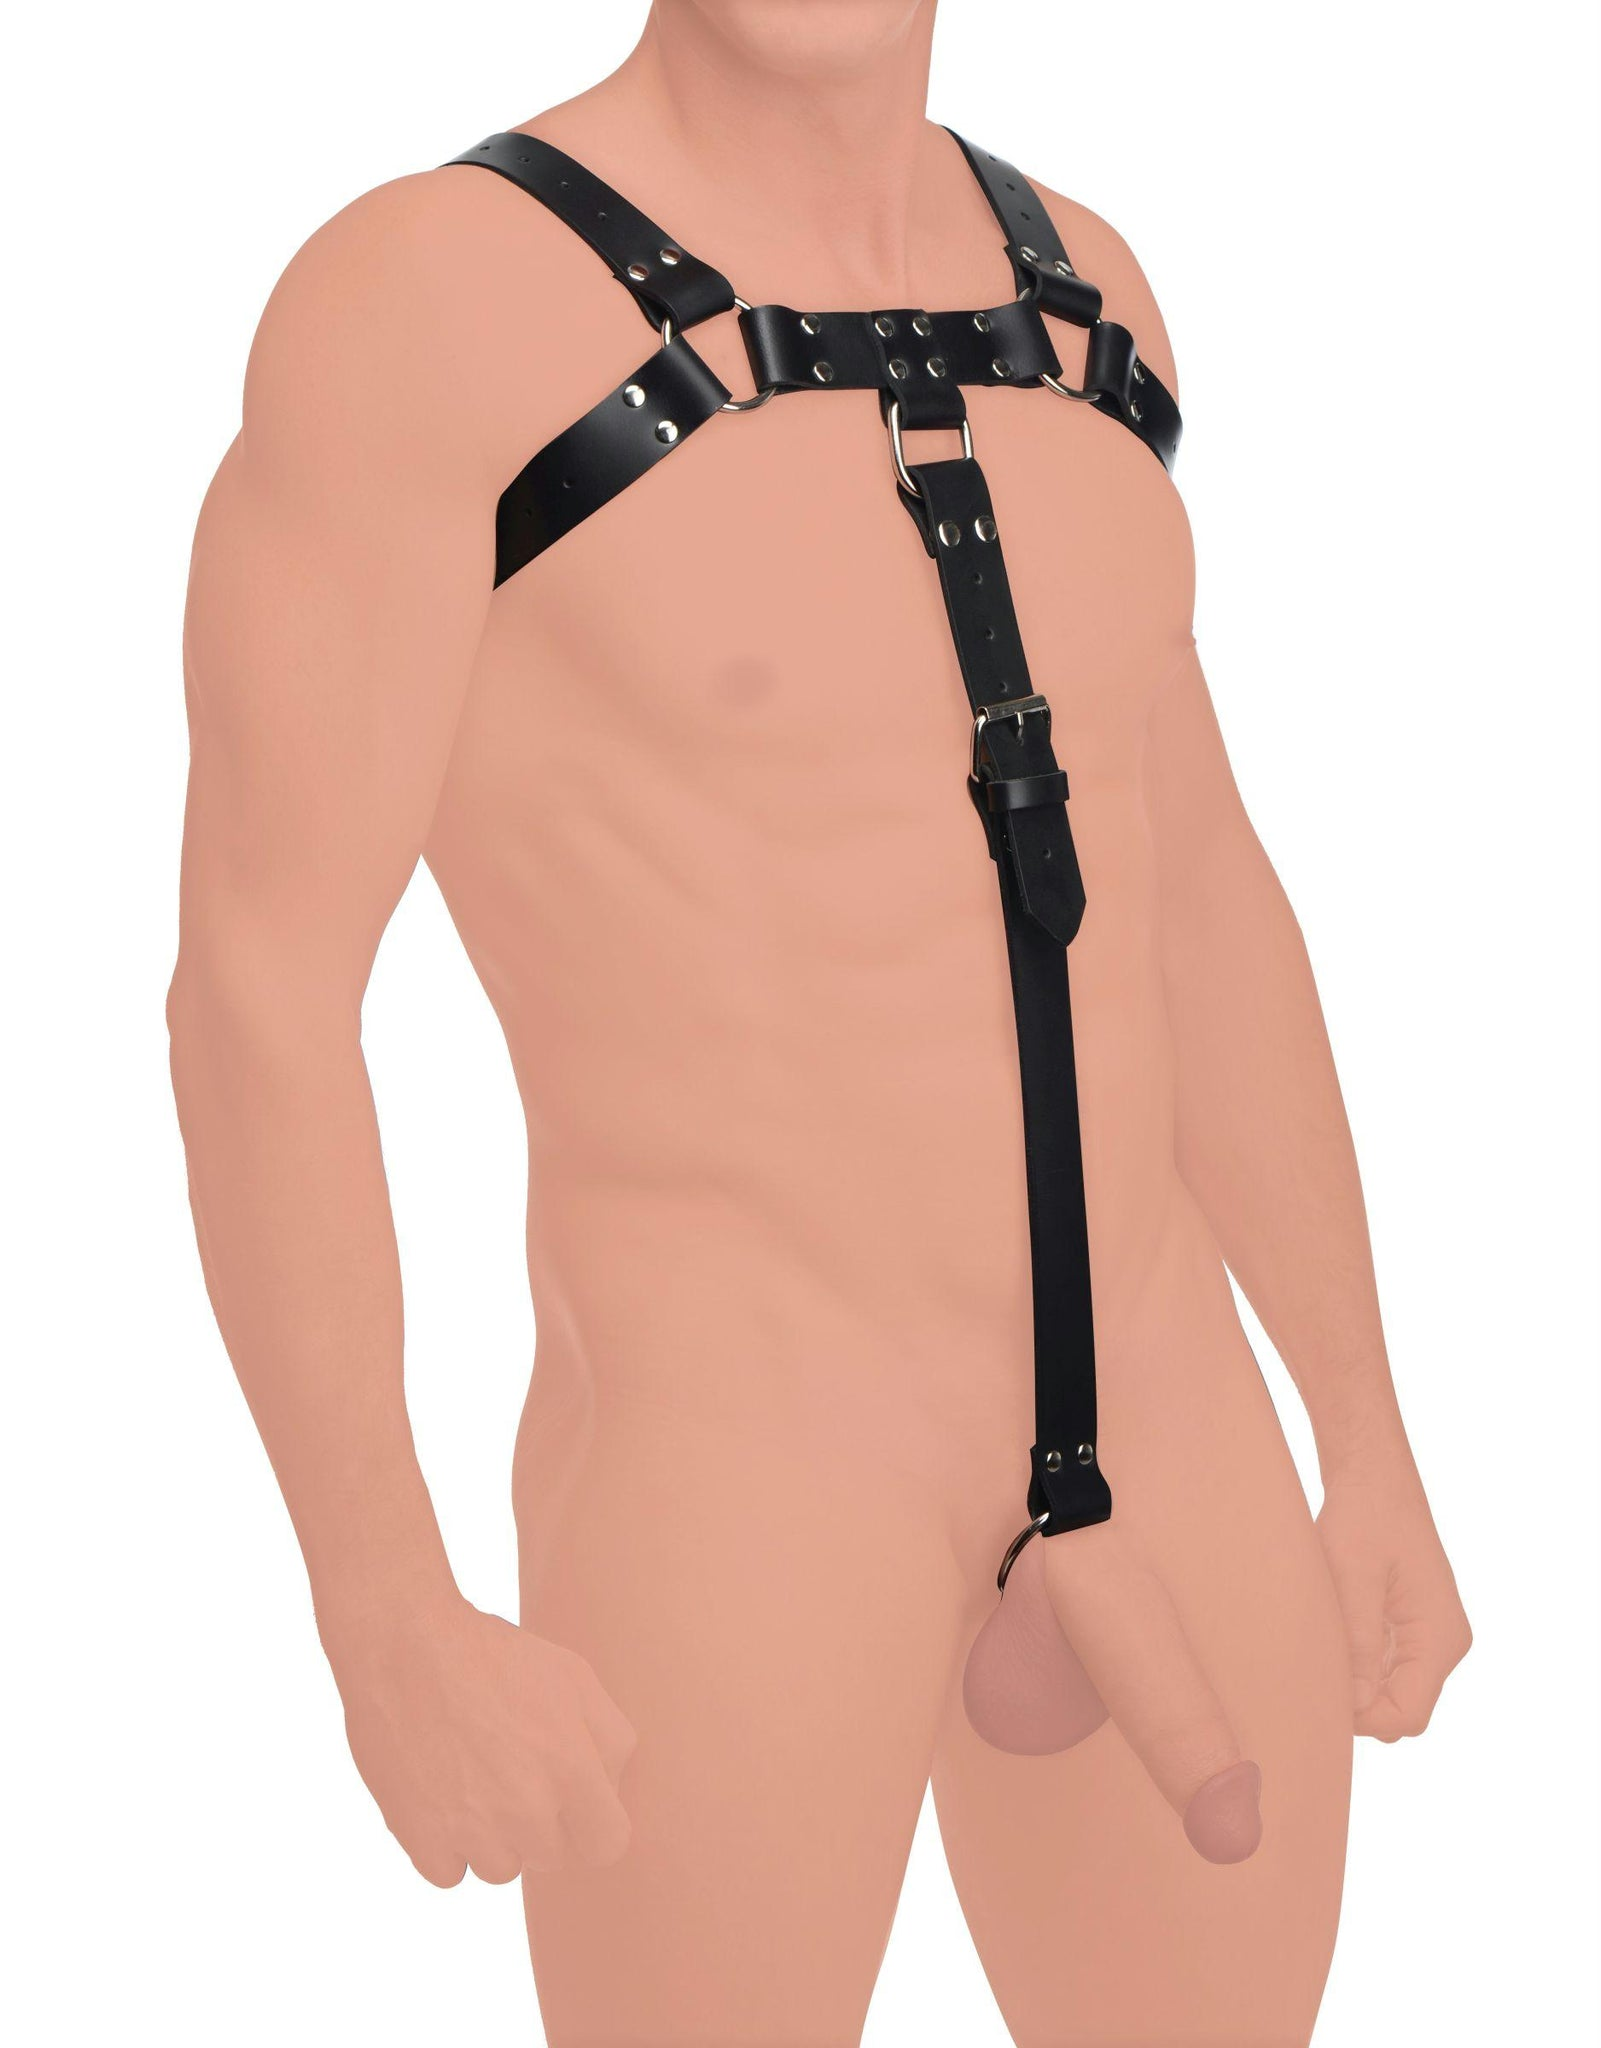 English Bull Dog Harness with Cock Strap